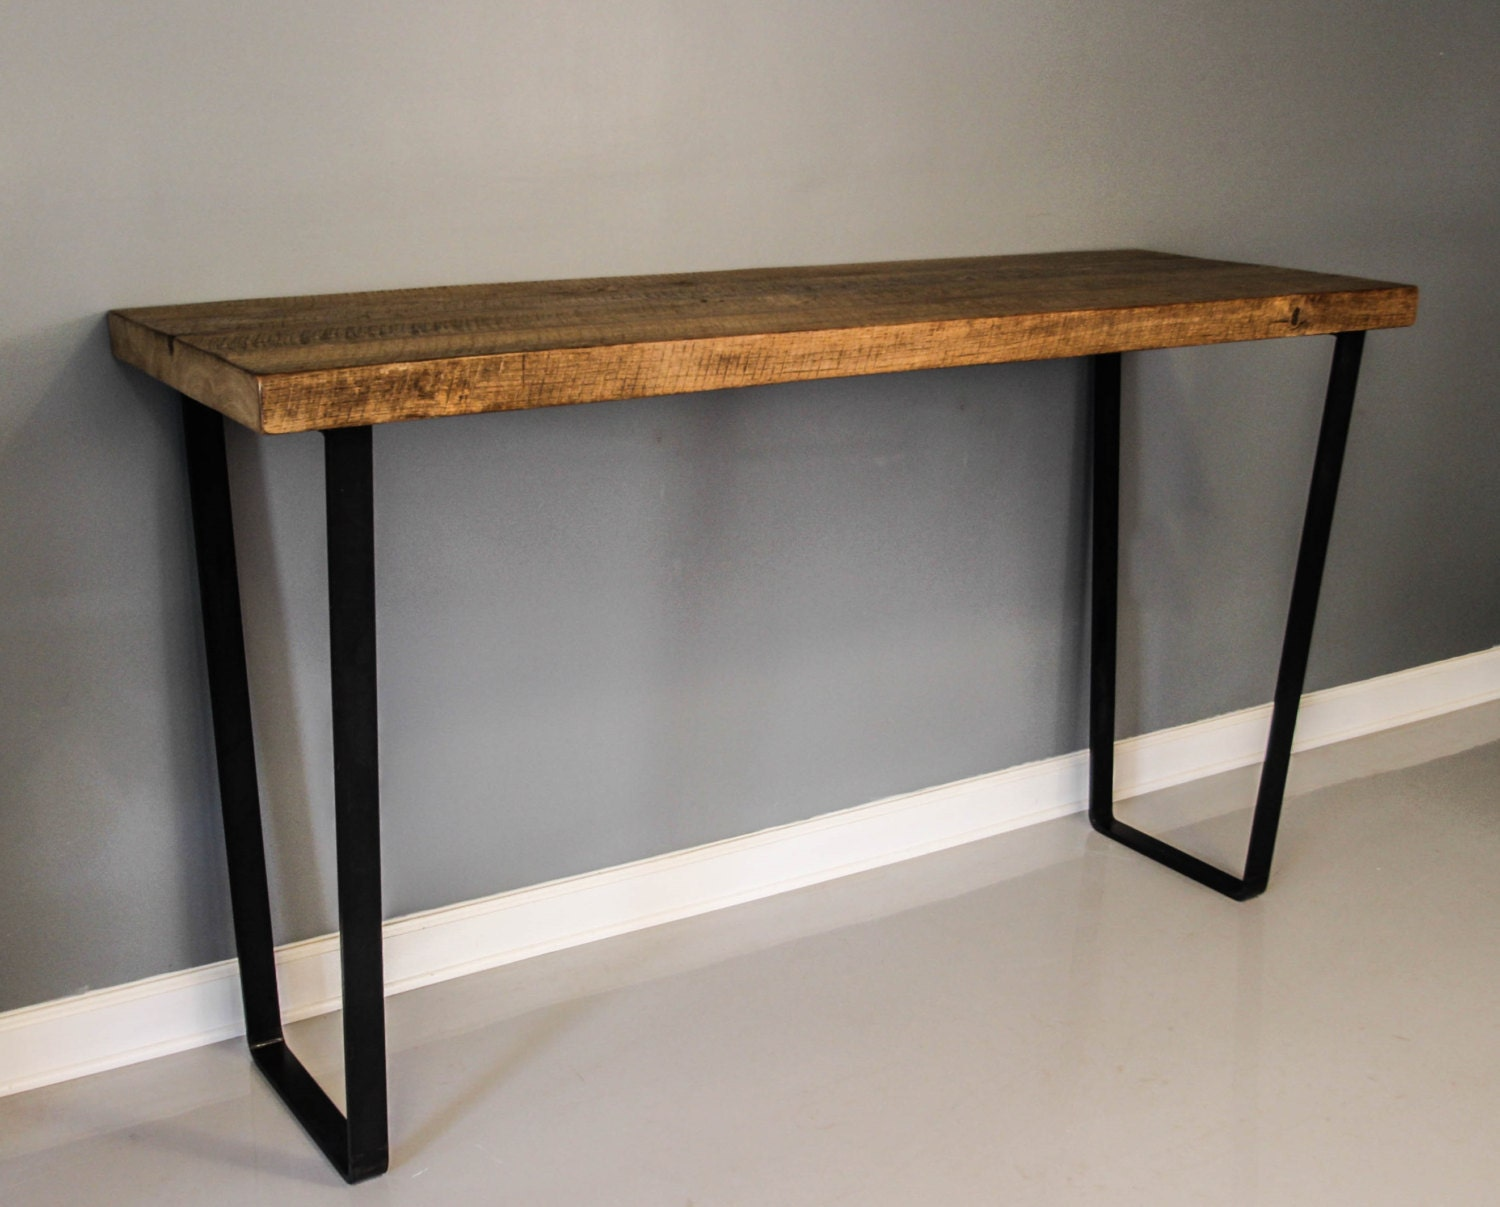 Superb img of Dining Table Steel Leg Table Reclaimed Planks Solid by DendroCo with #966535 color and 1500x1207 pixels